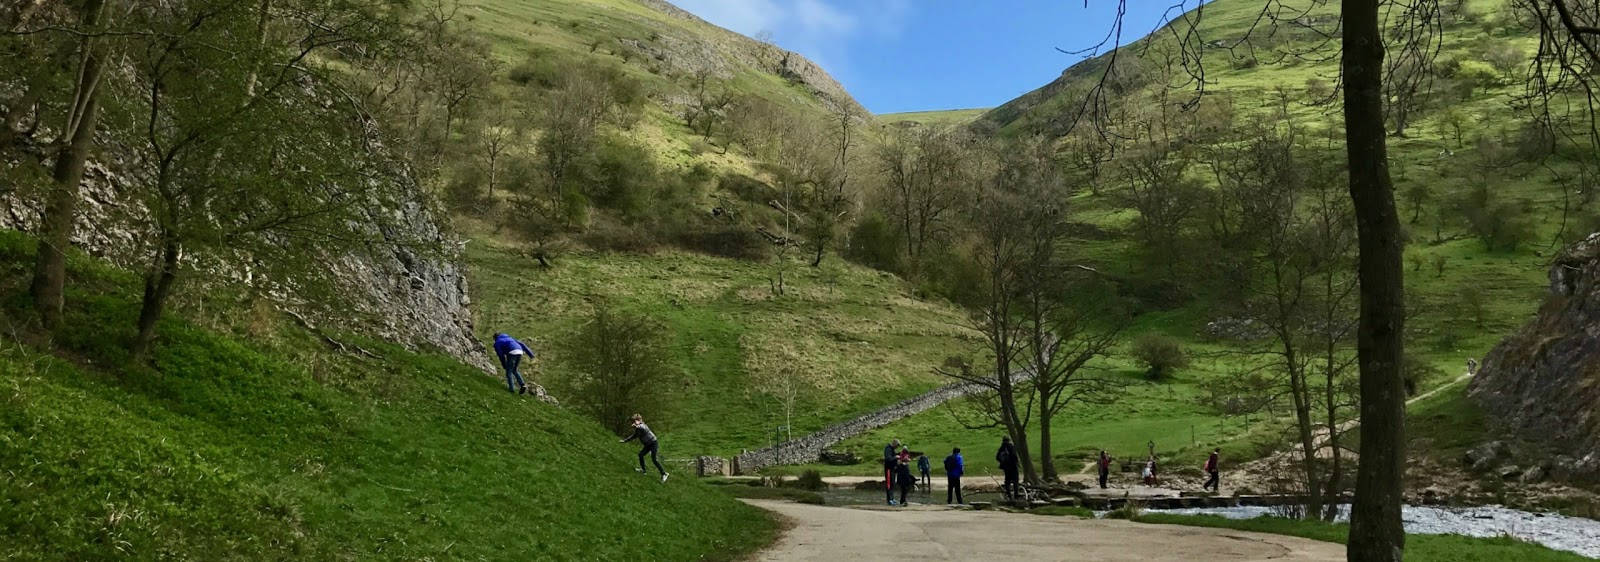 dovedale-mountains-climbing